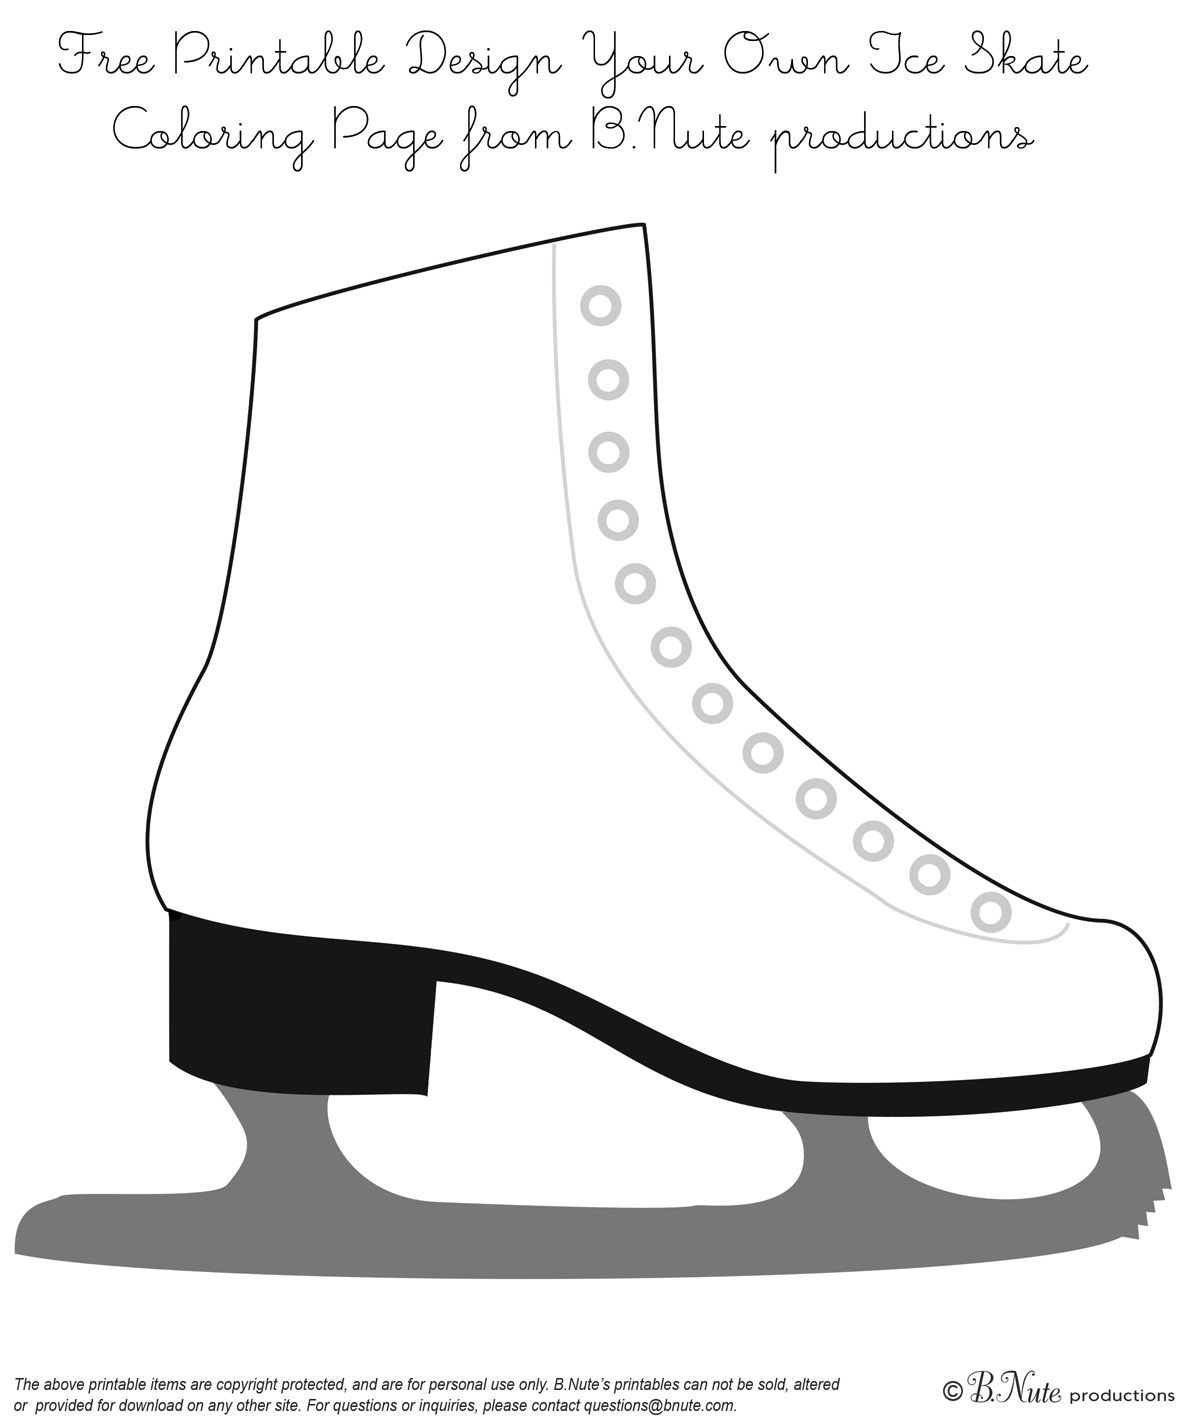 Bnute Productions: Free Printable Coloring Page: Design Your Own Ice - Free Printable Skateboard Birthday Party Invitations